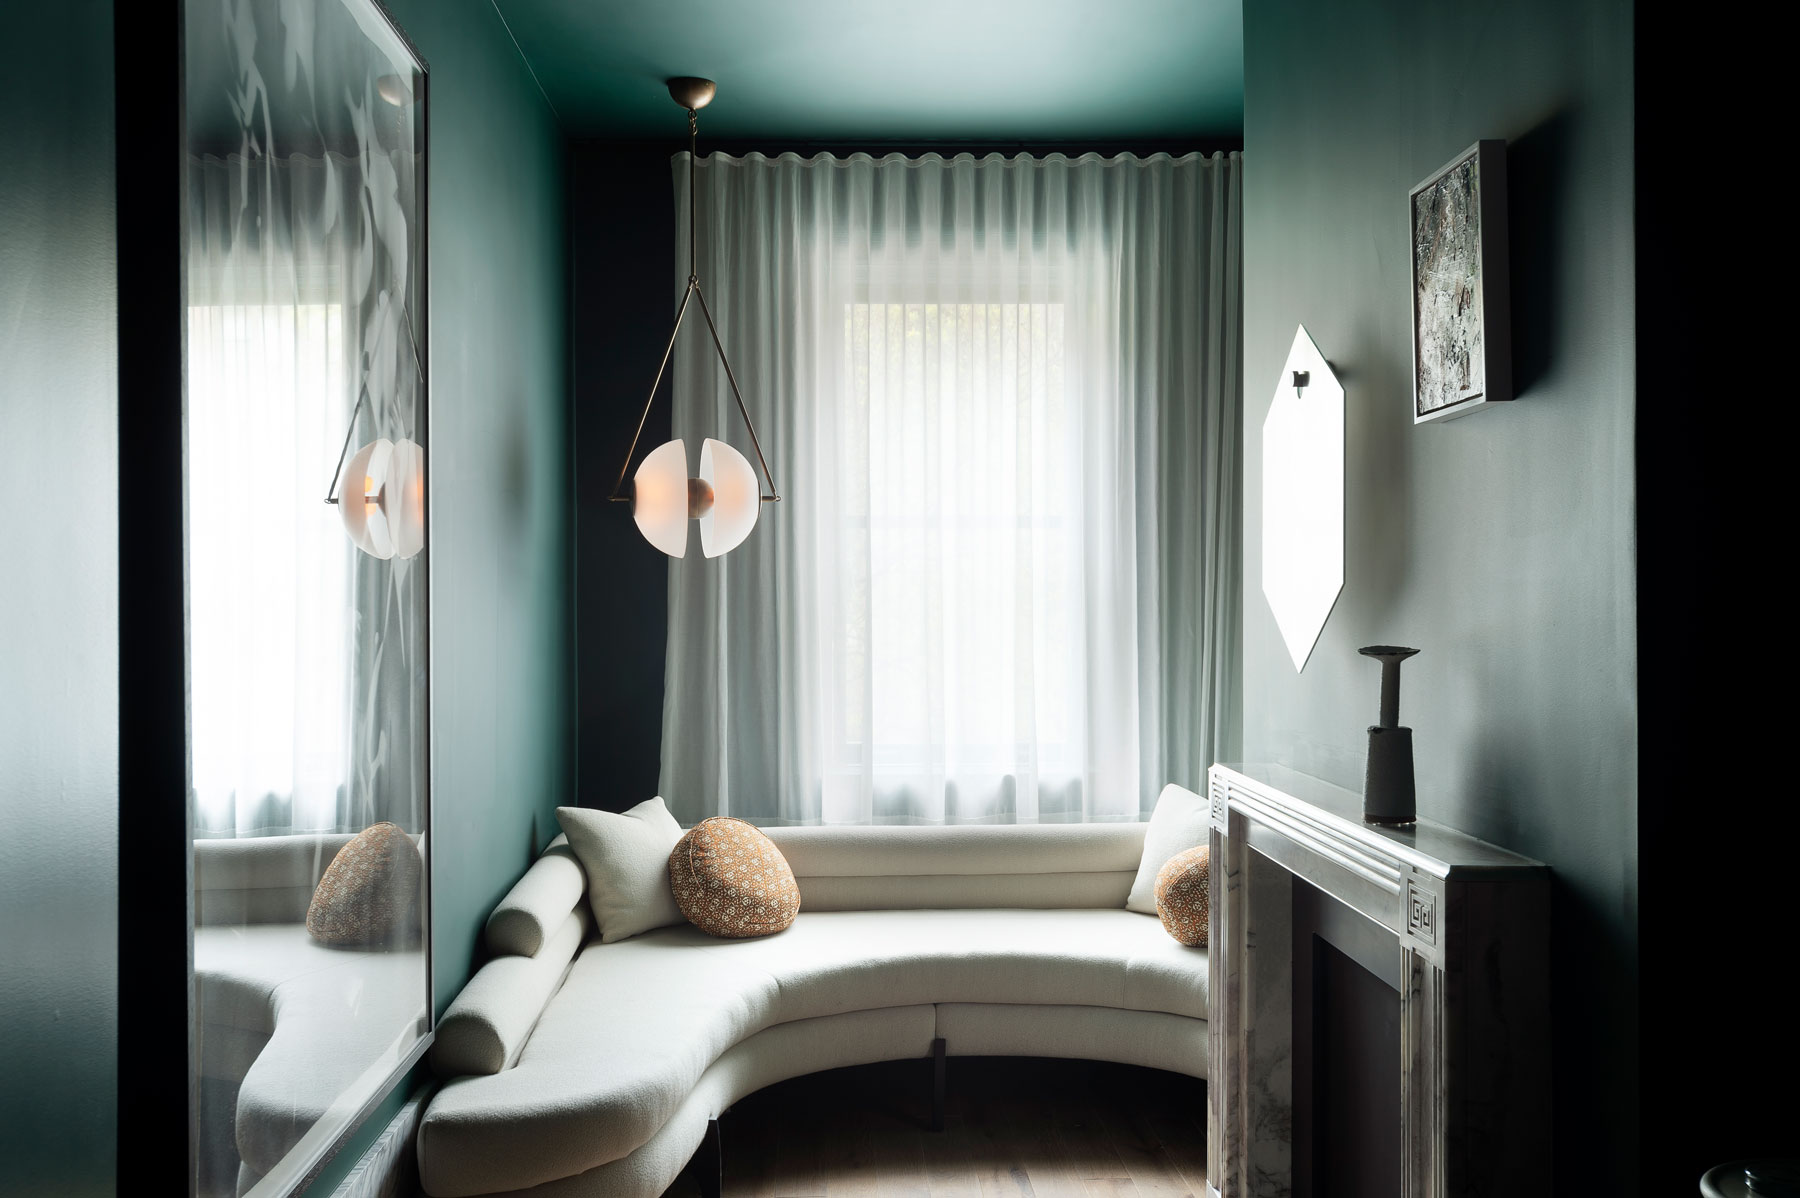 Unexpected Benjamin Moore Paint Colors - Viridian